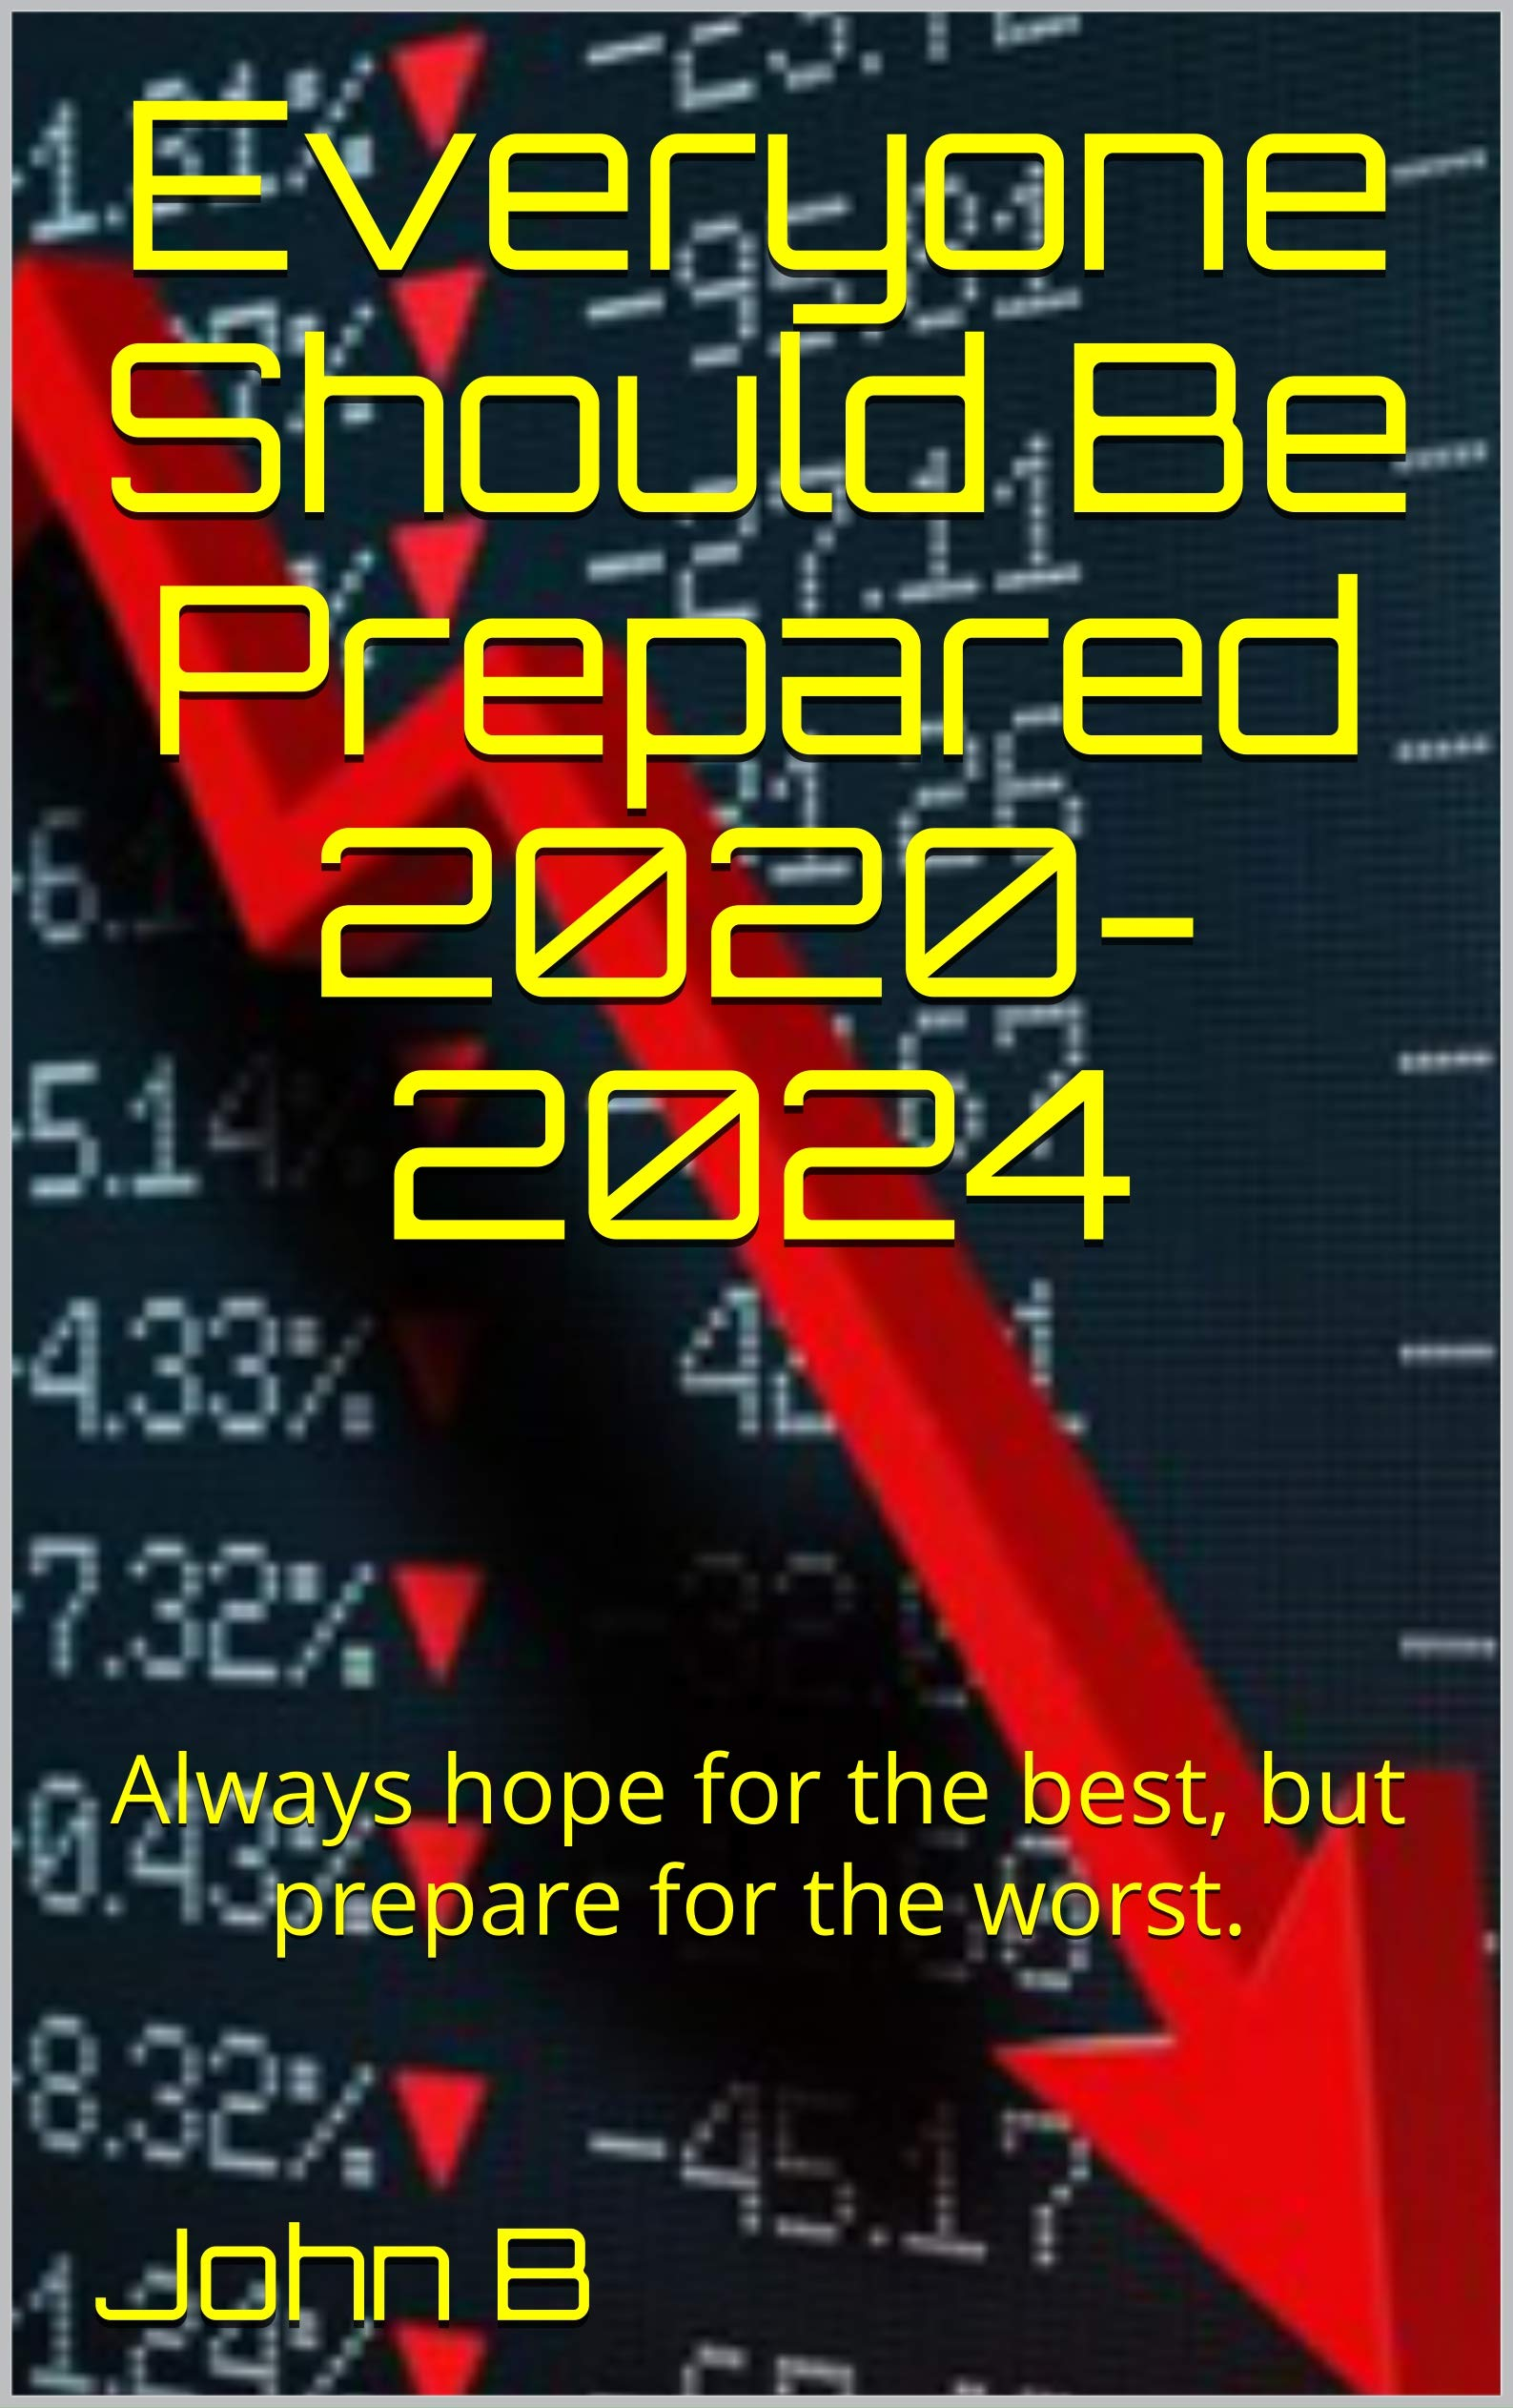 Everyone Should Be Prepared 2020-2024: Minimally prepared for natural disasters, off-the-grid power and economic collapse. Have a plan and be better prepared to survive the SHTF.